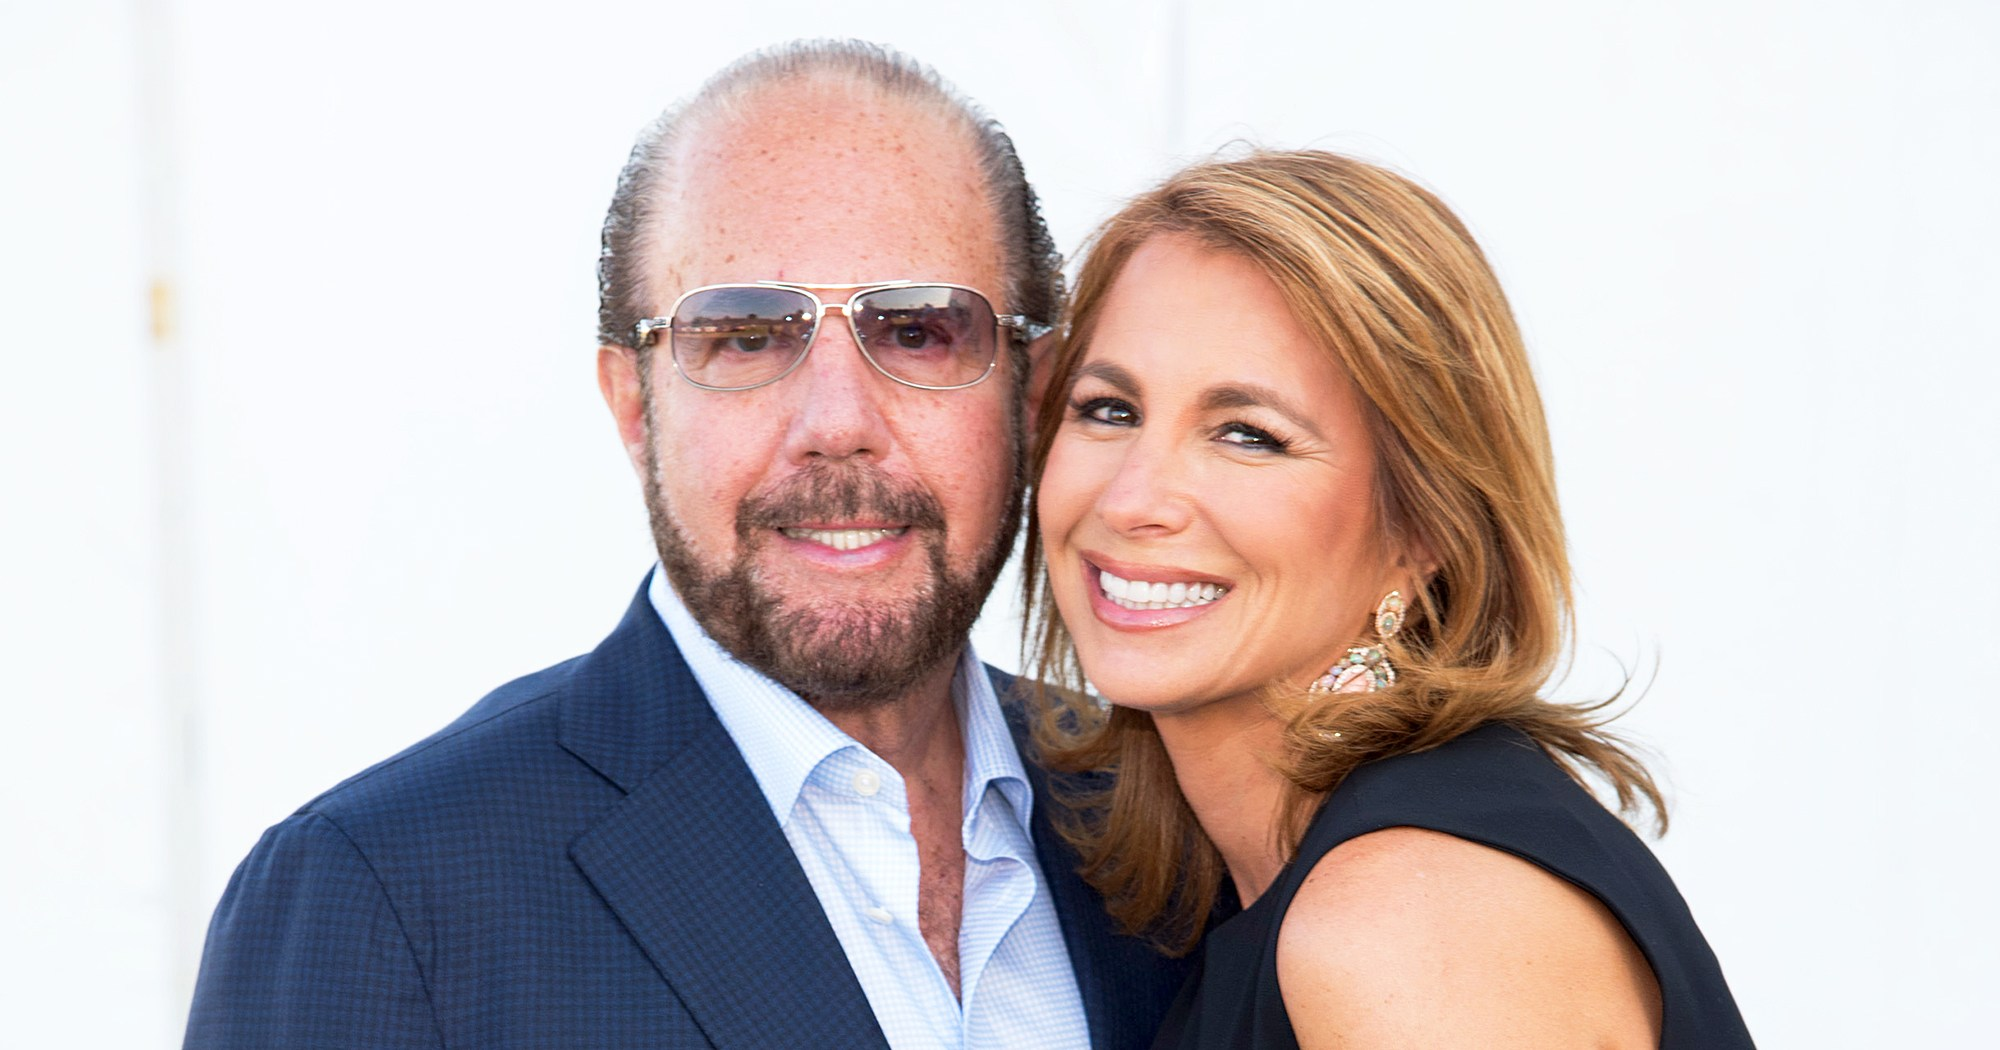 Bobby Zarin Dead: Jill Zarin's Husband Dies at 71 After Battle With Cancer